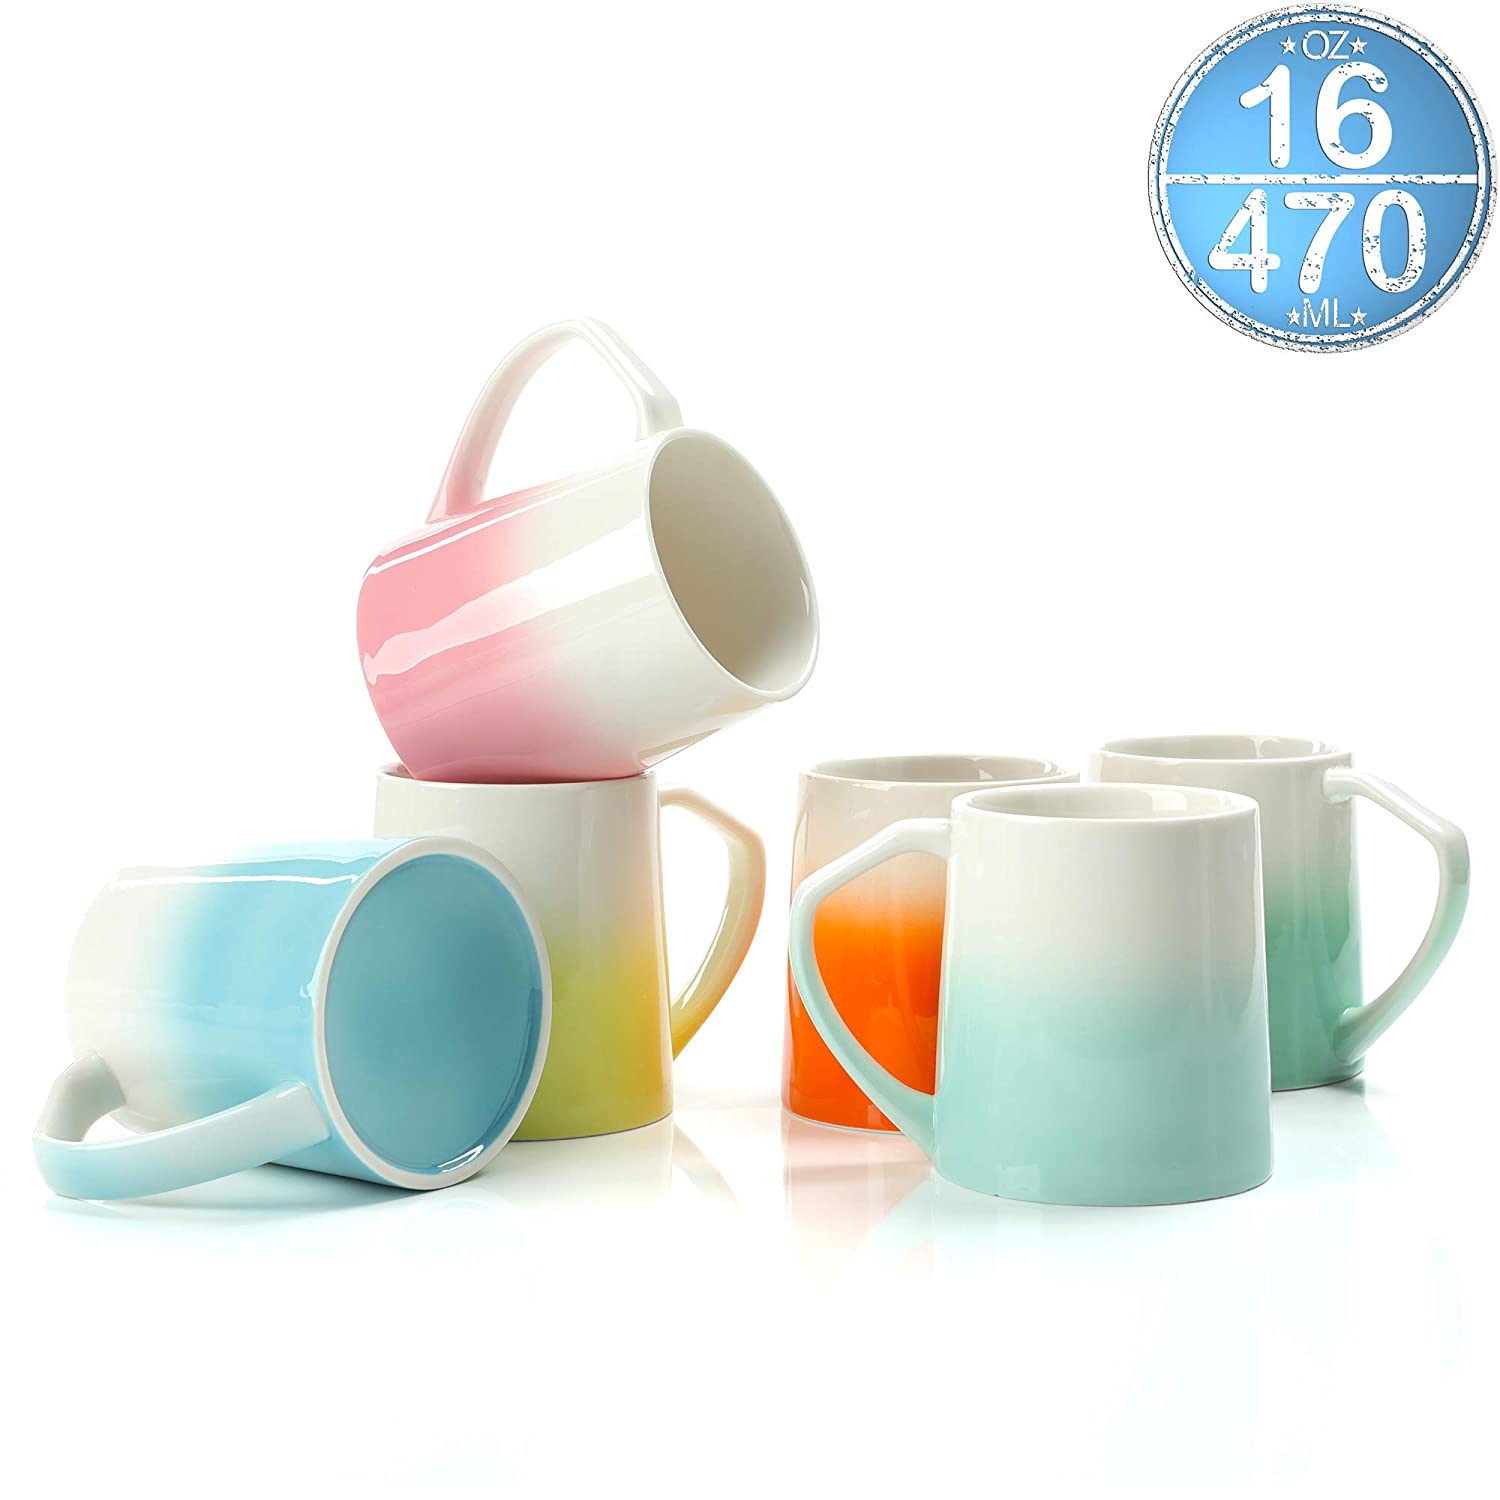 TEANAGOO MS025C Porcelain Mugs - 16 Ounce for Coffee, Tea, Cocoa, Set of 6, Cold Assorted Colors